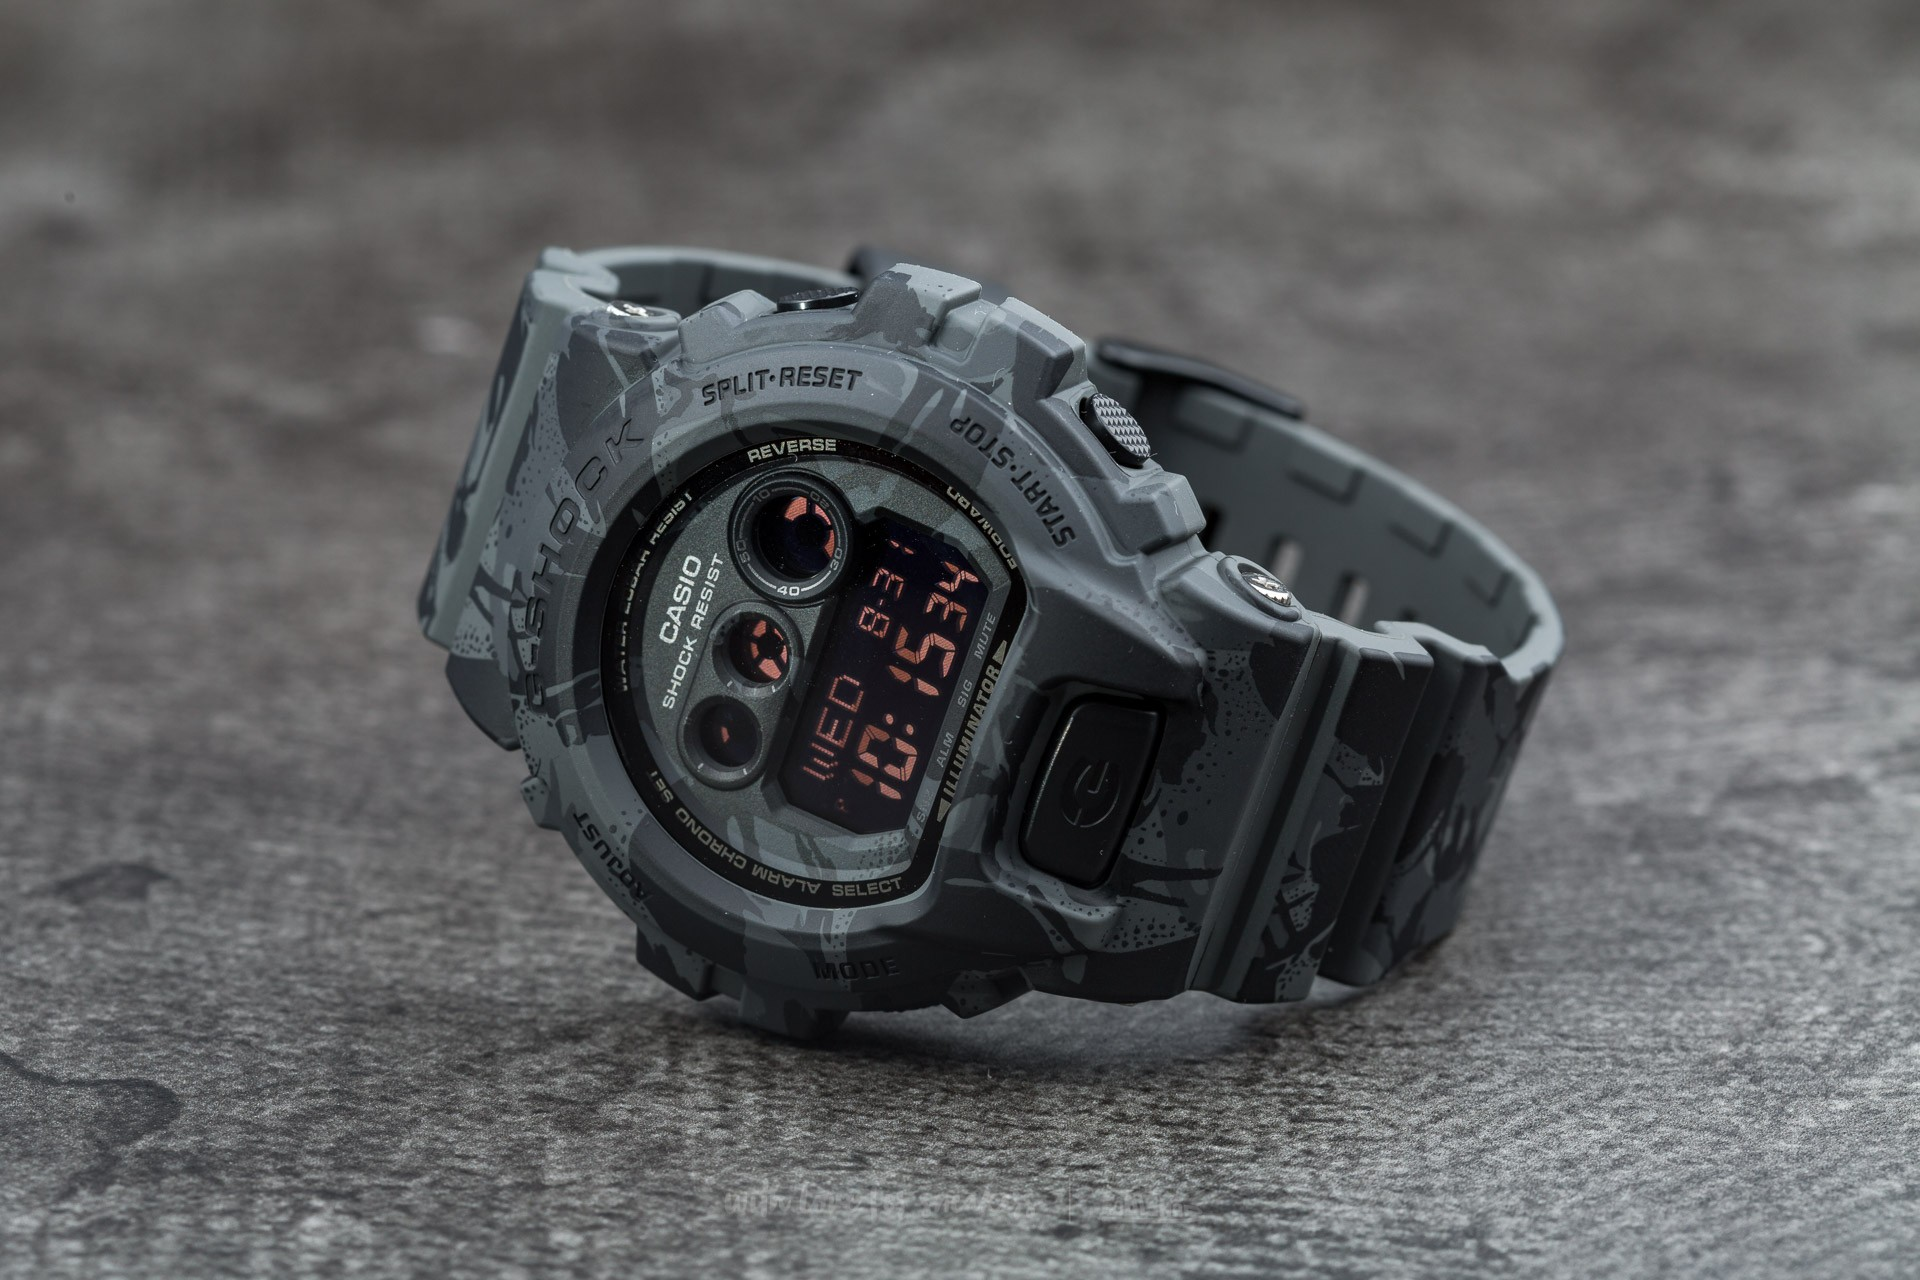 G-Shock GD-X6900MC-1ER